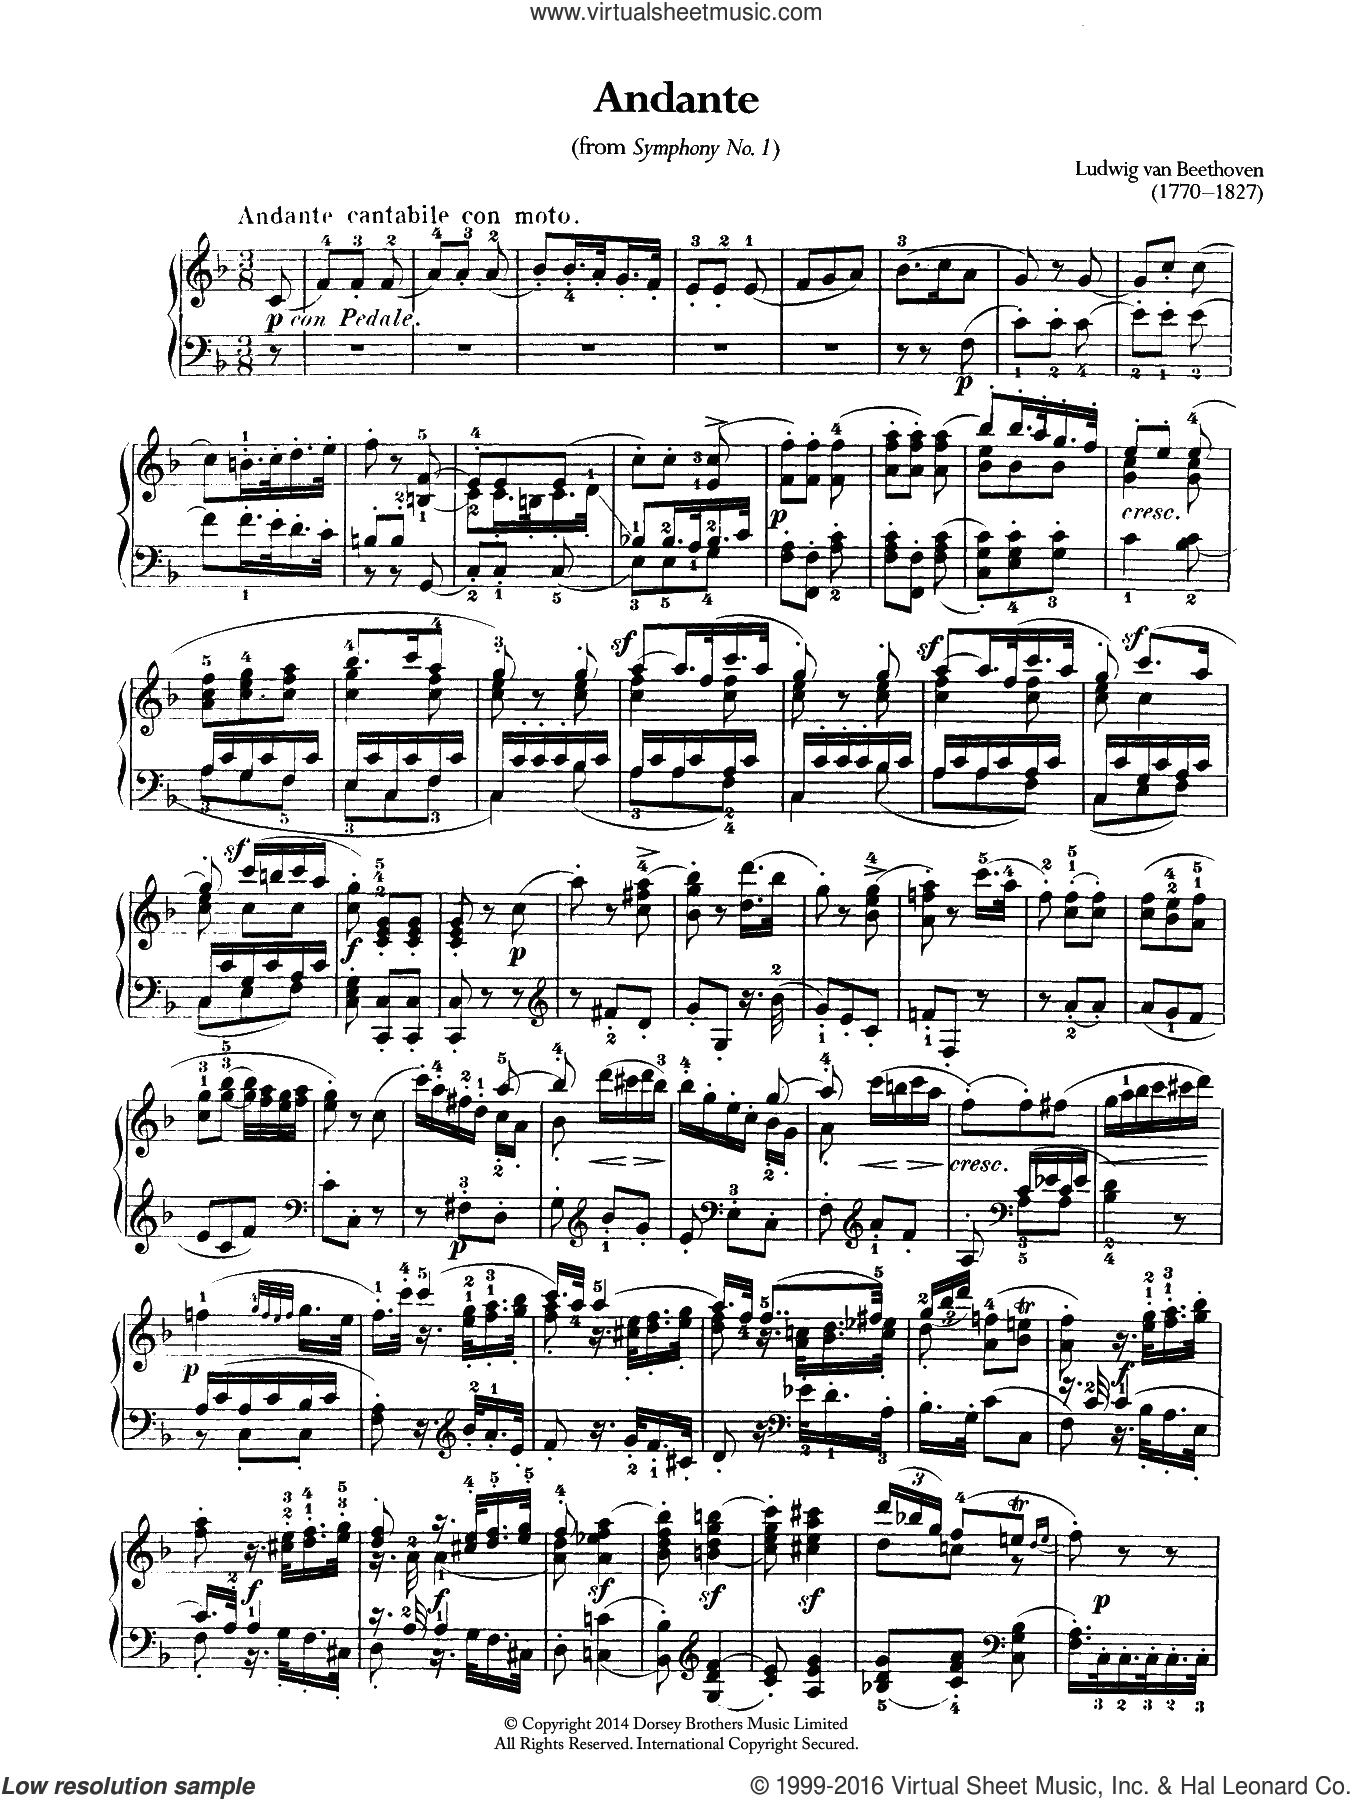 Symphony No.1, Andante sheet music for piano solo by Ludwig van Beethoven